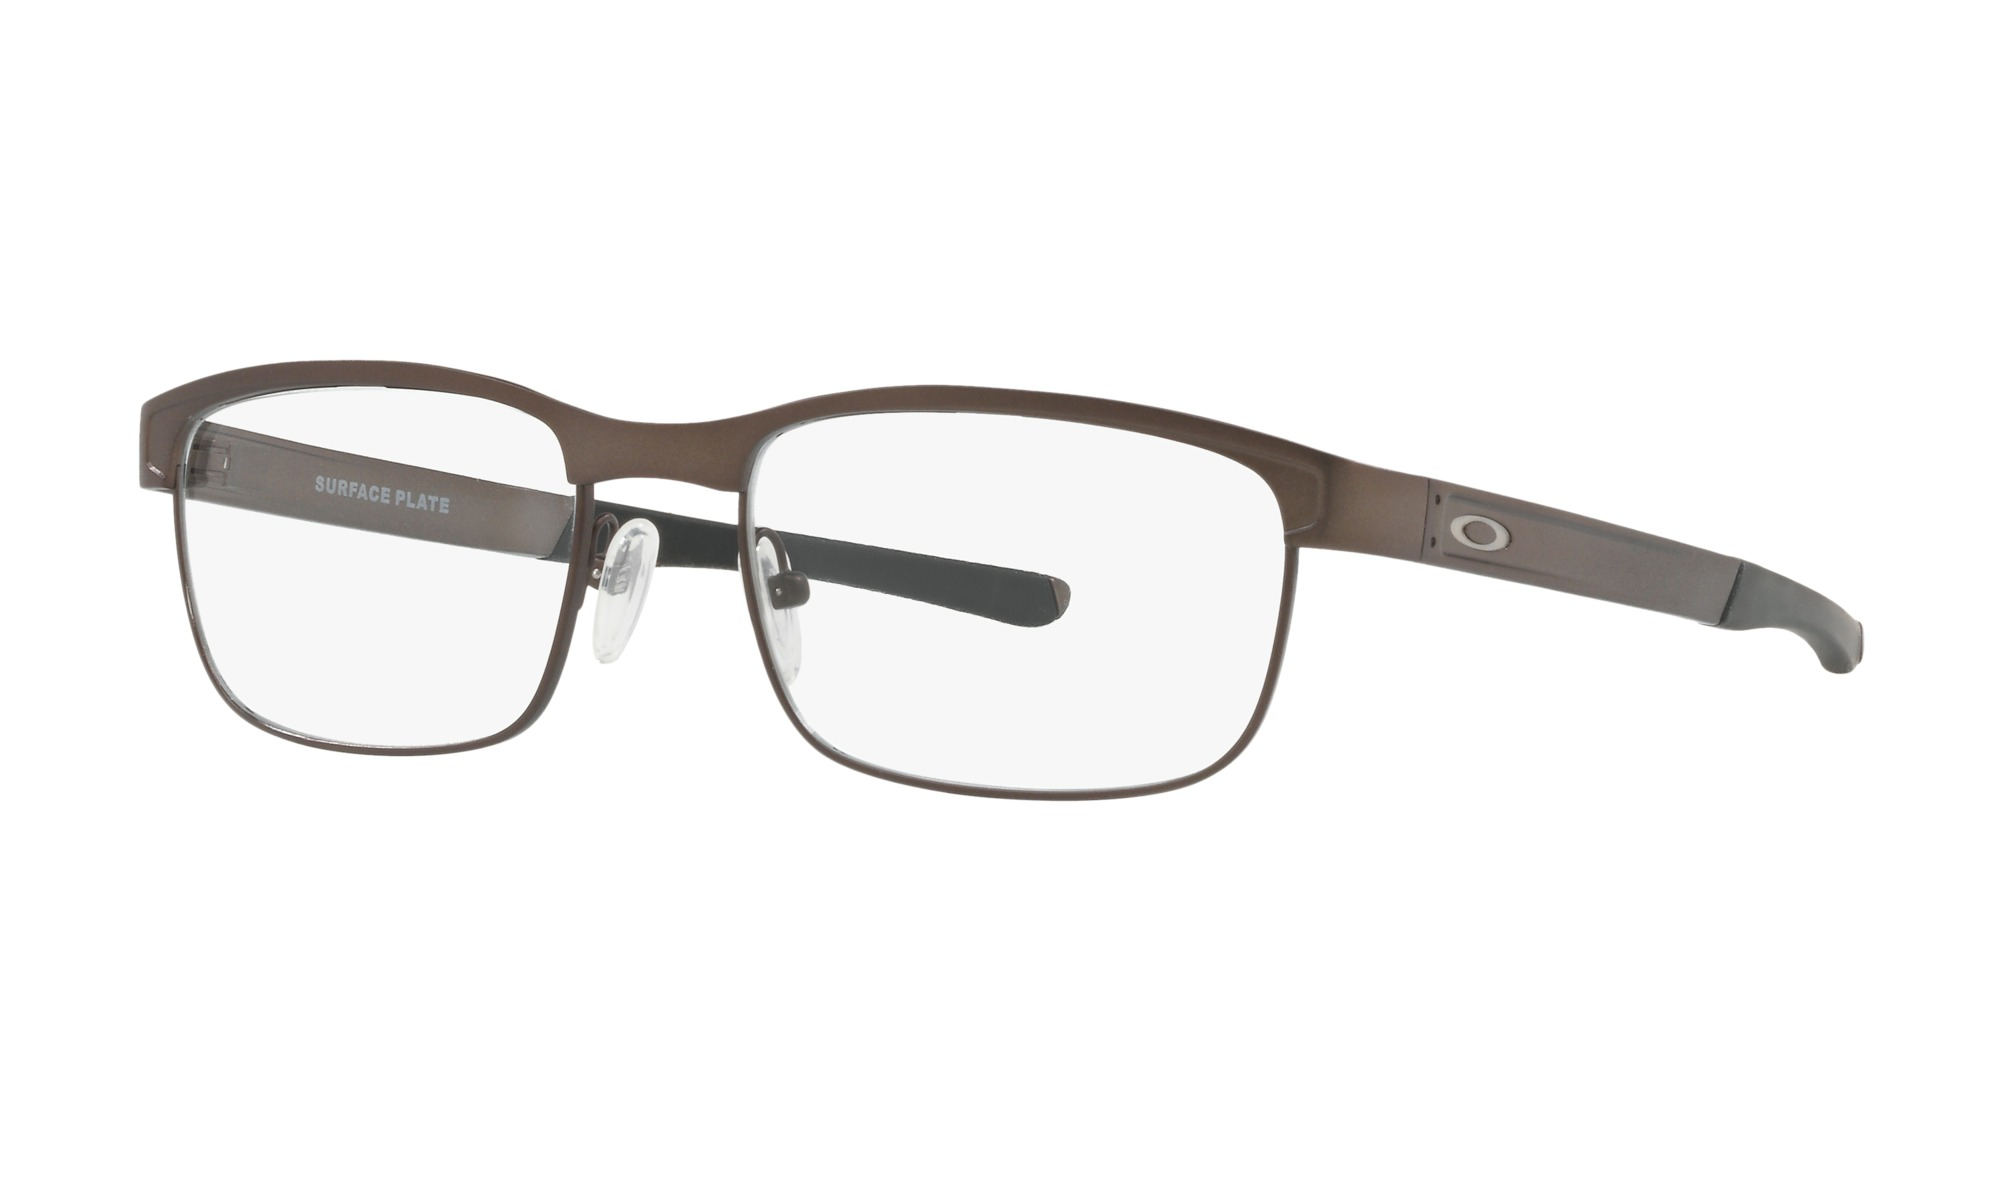 Oakley Model: SURFACE PLATE 5132, Colour Code: 02, Frame Colour: PEWTER